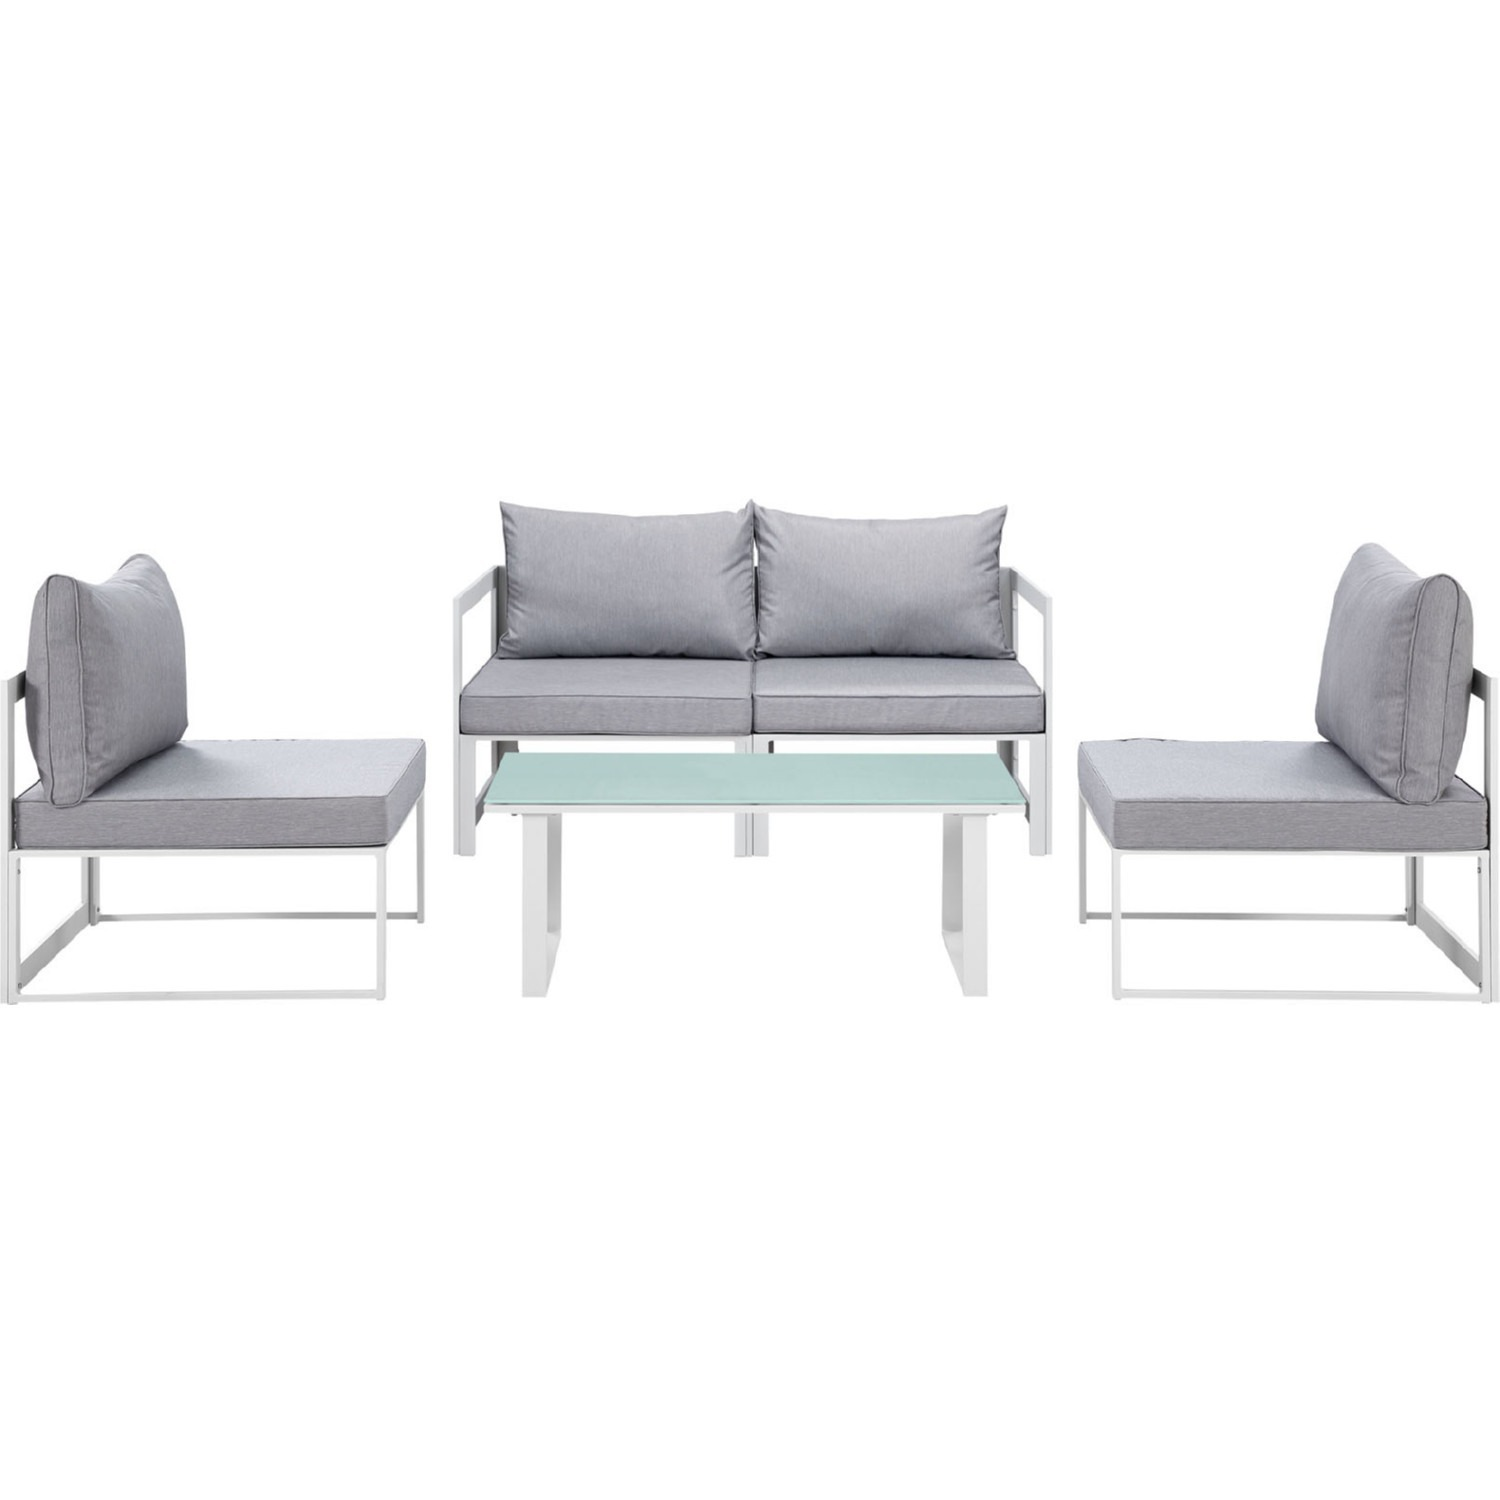 5-Piece Outdoor Sectional In Gray & White Finish - image-0